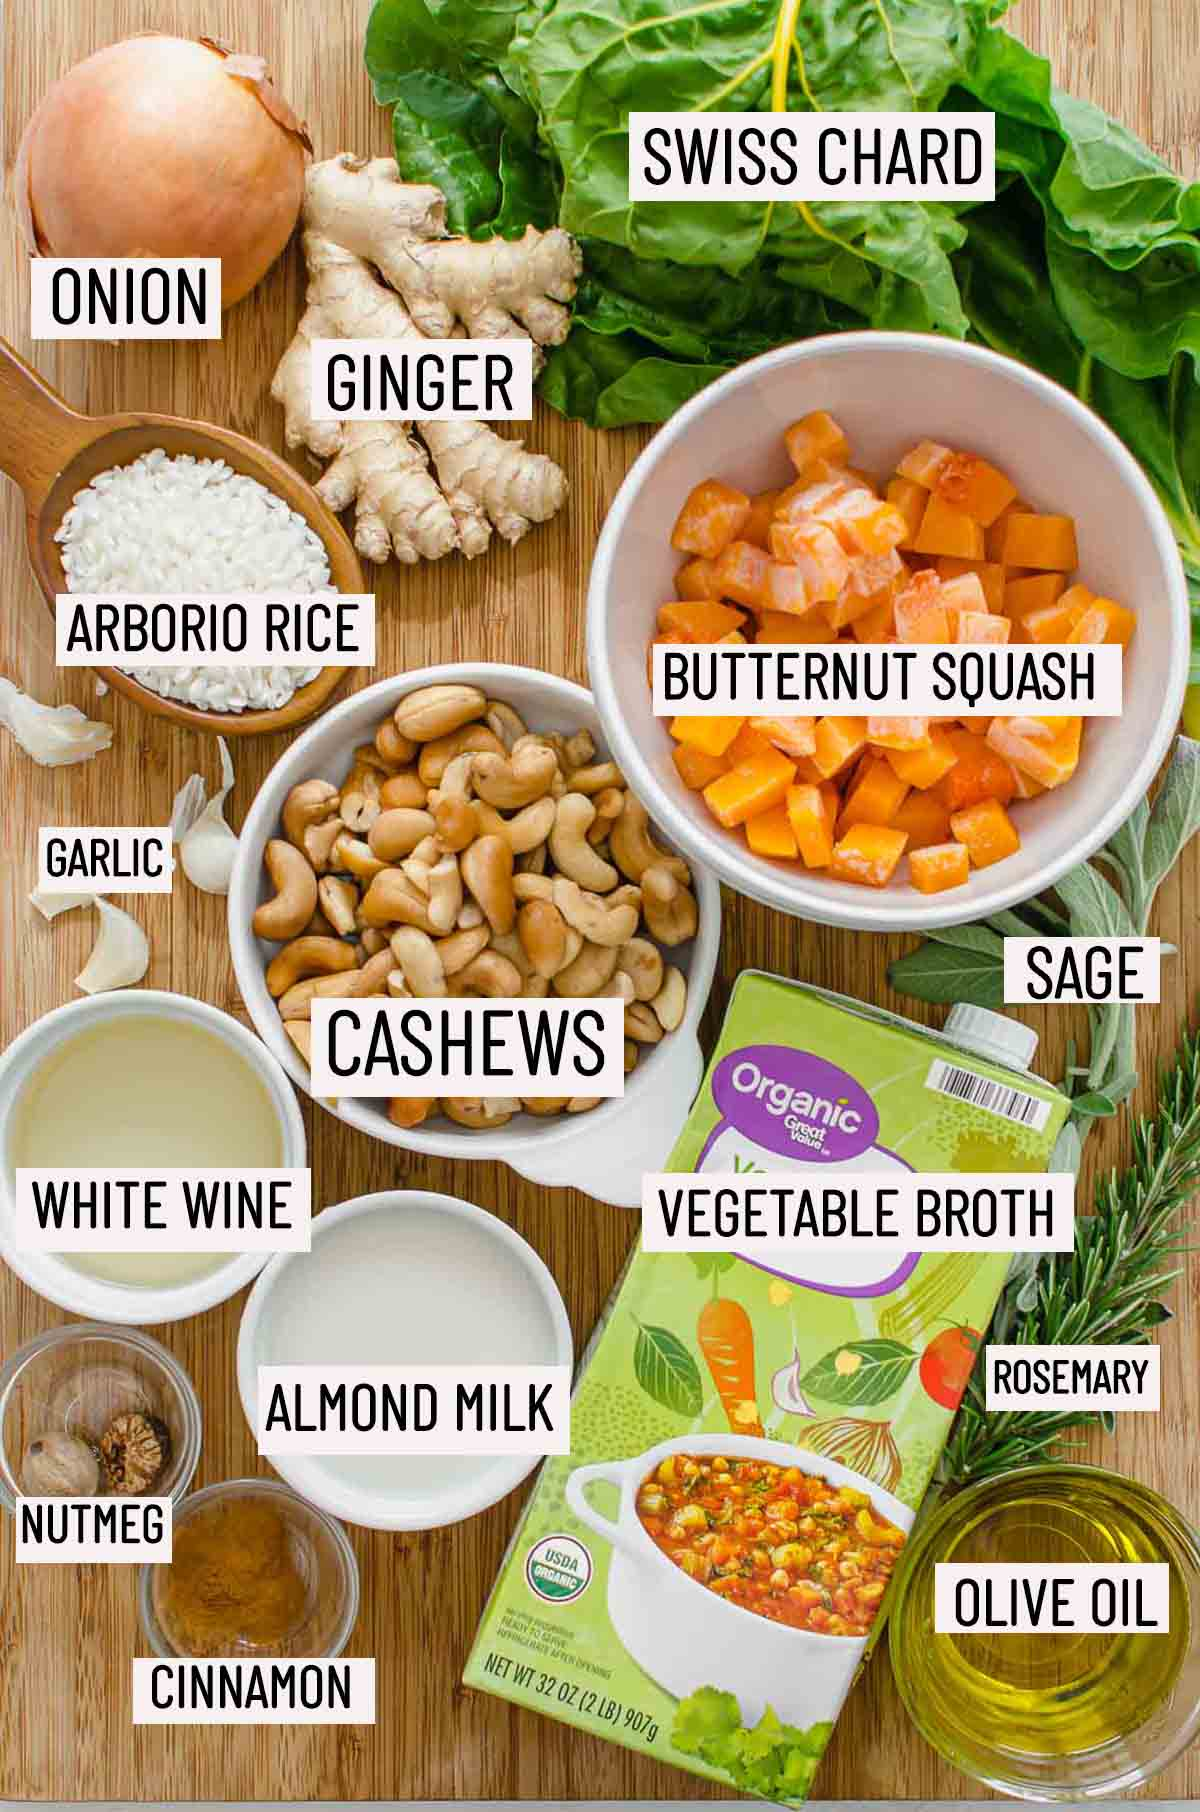 Portioned ingredients needs to make risotto including butternut squash, rice, wine, cashews, onion, garlic, swiss chard, sage, rosemary, broth, almond milk, olive oil, cinnamon, and nutmeg.